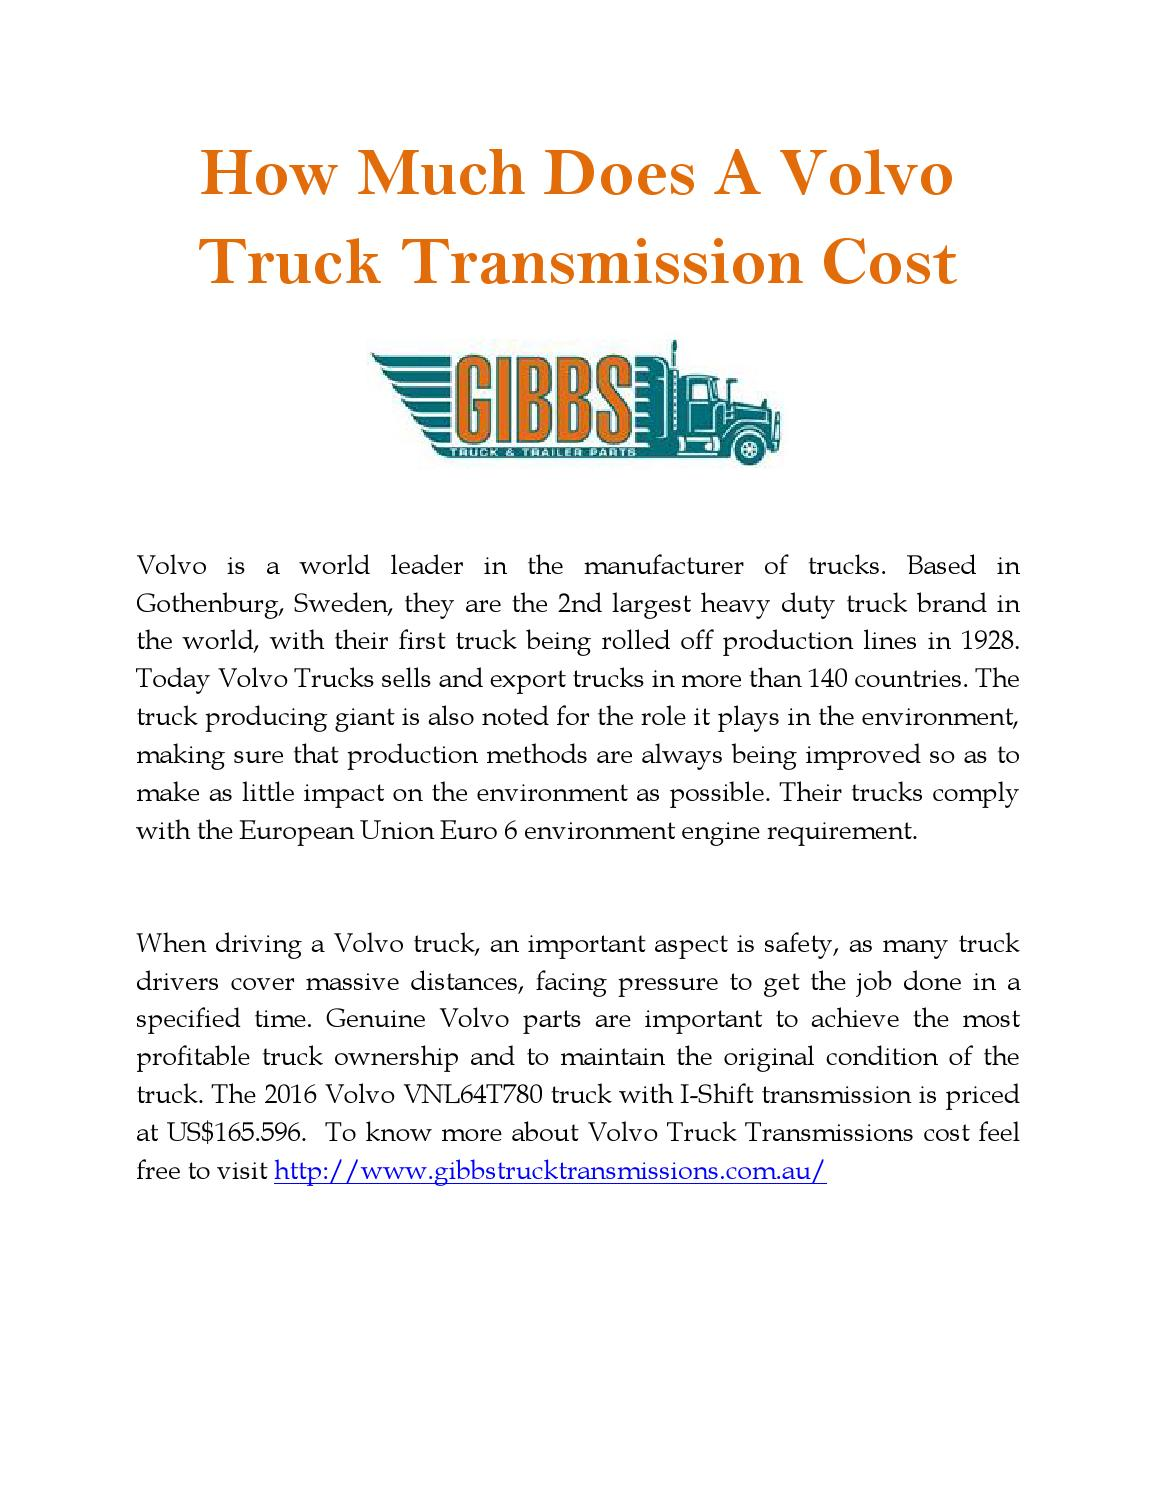 How Much Does A Transmission Cost >> How Much Does A Volvo Truck Transmission Cost By Gibbs Truck